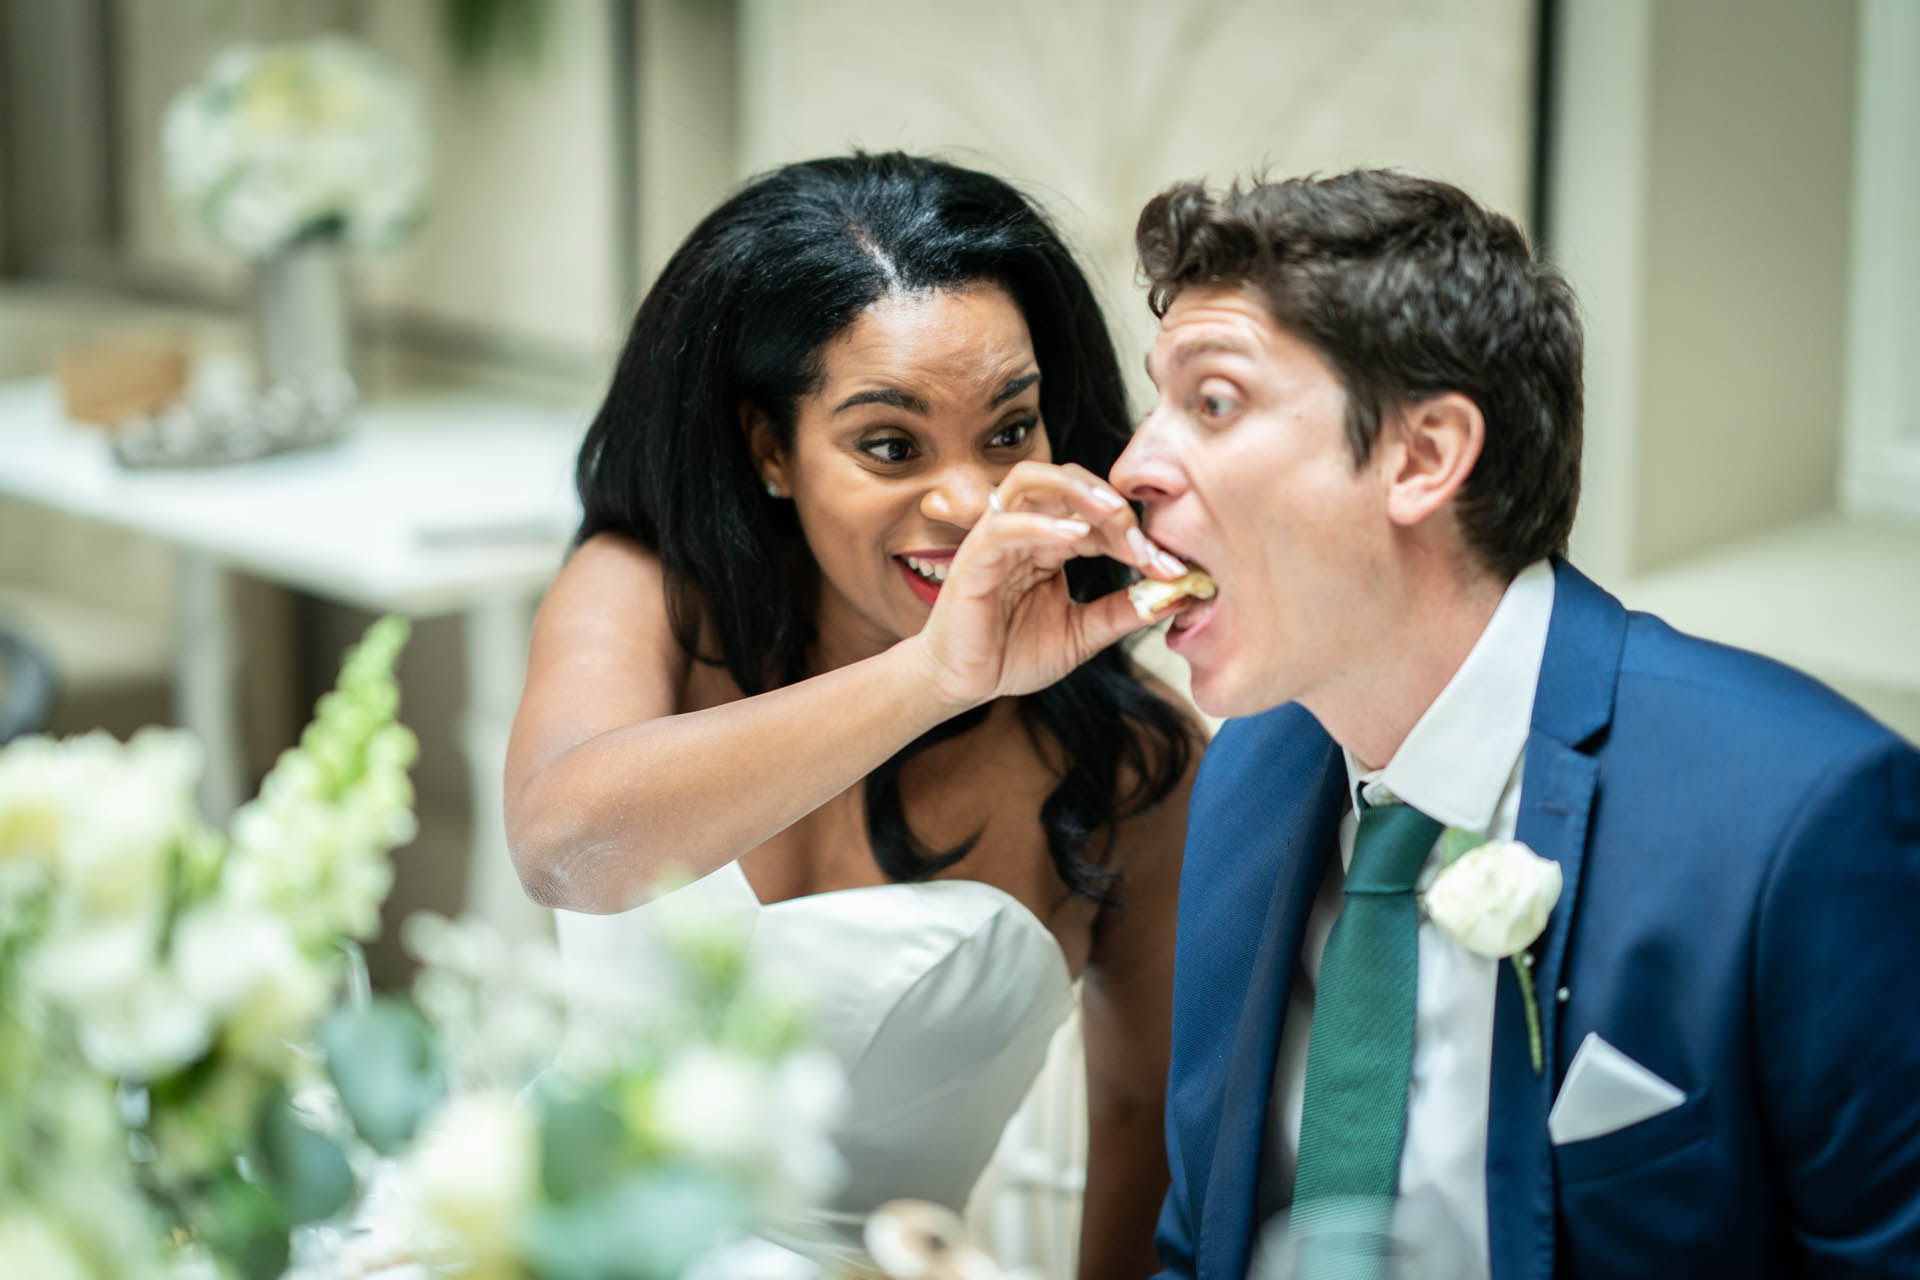 Somerset House of London - Elopement Reception Venue Image | The bride feeds the groom during the wedding meal